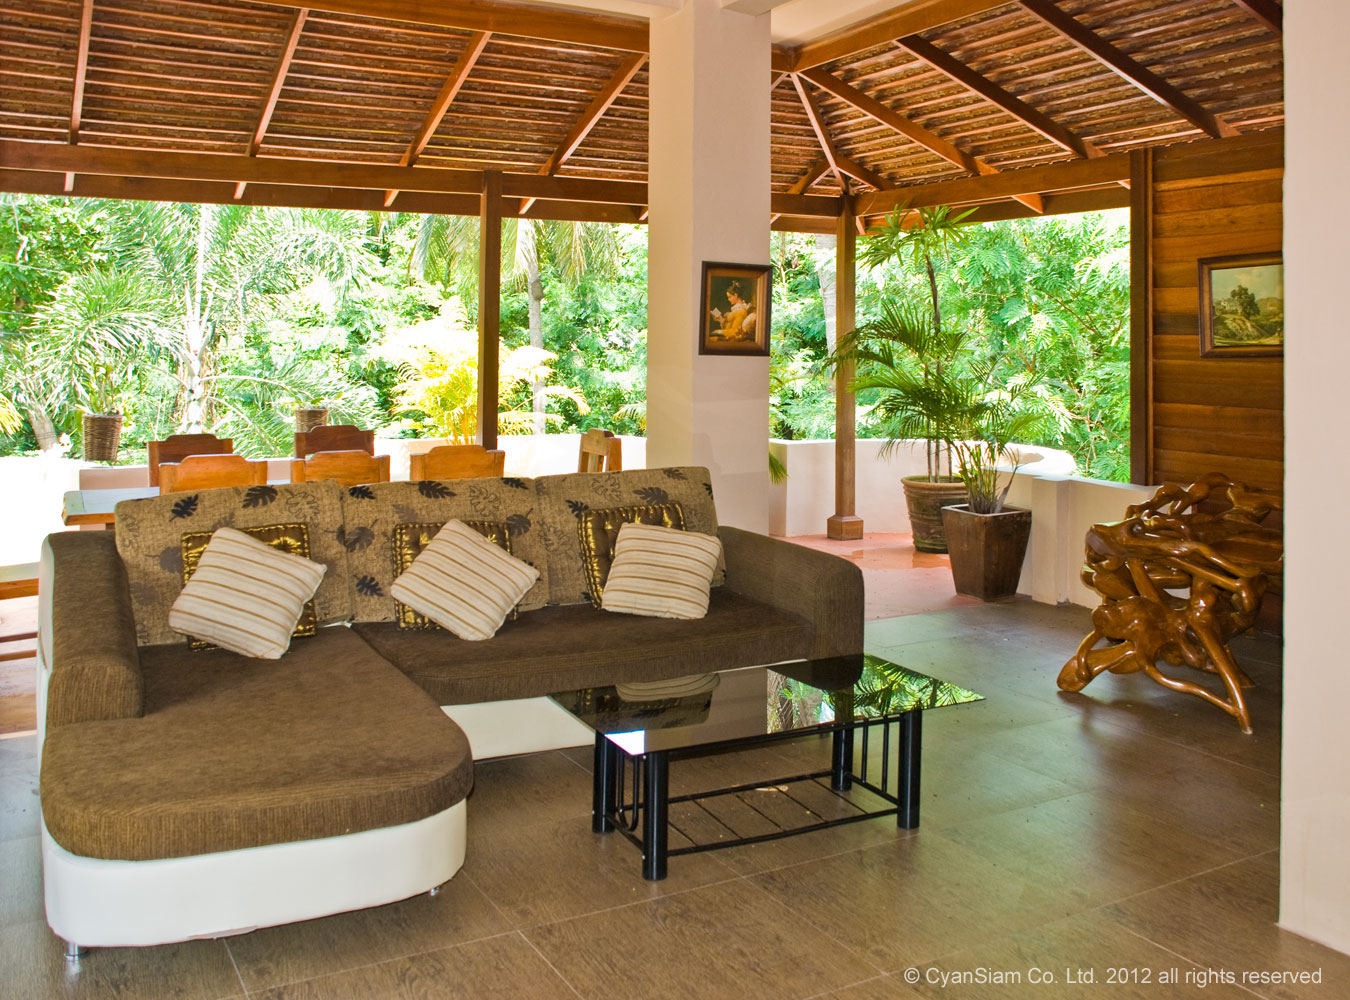 Mediterranean style villa rawai phuket for sale Mediterranean home decor for sale